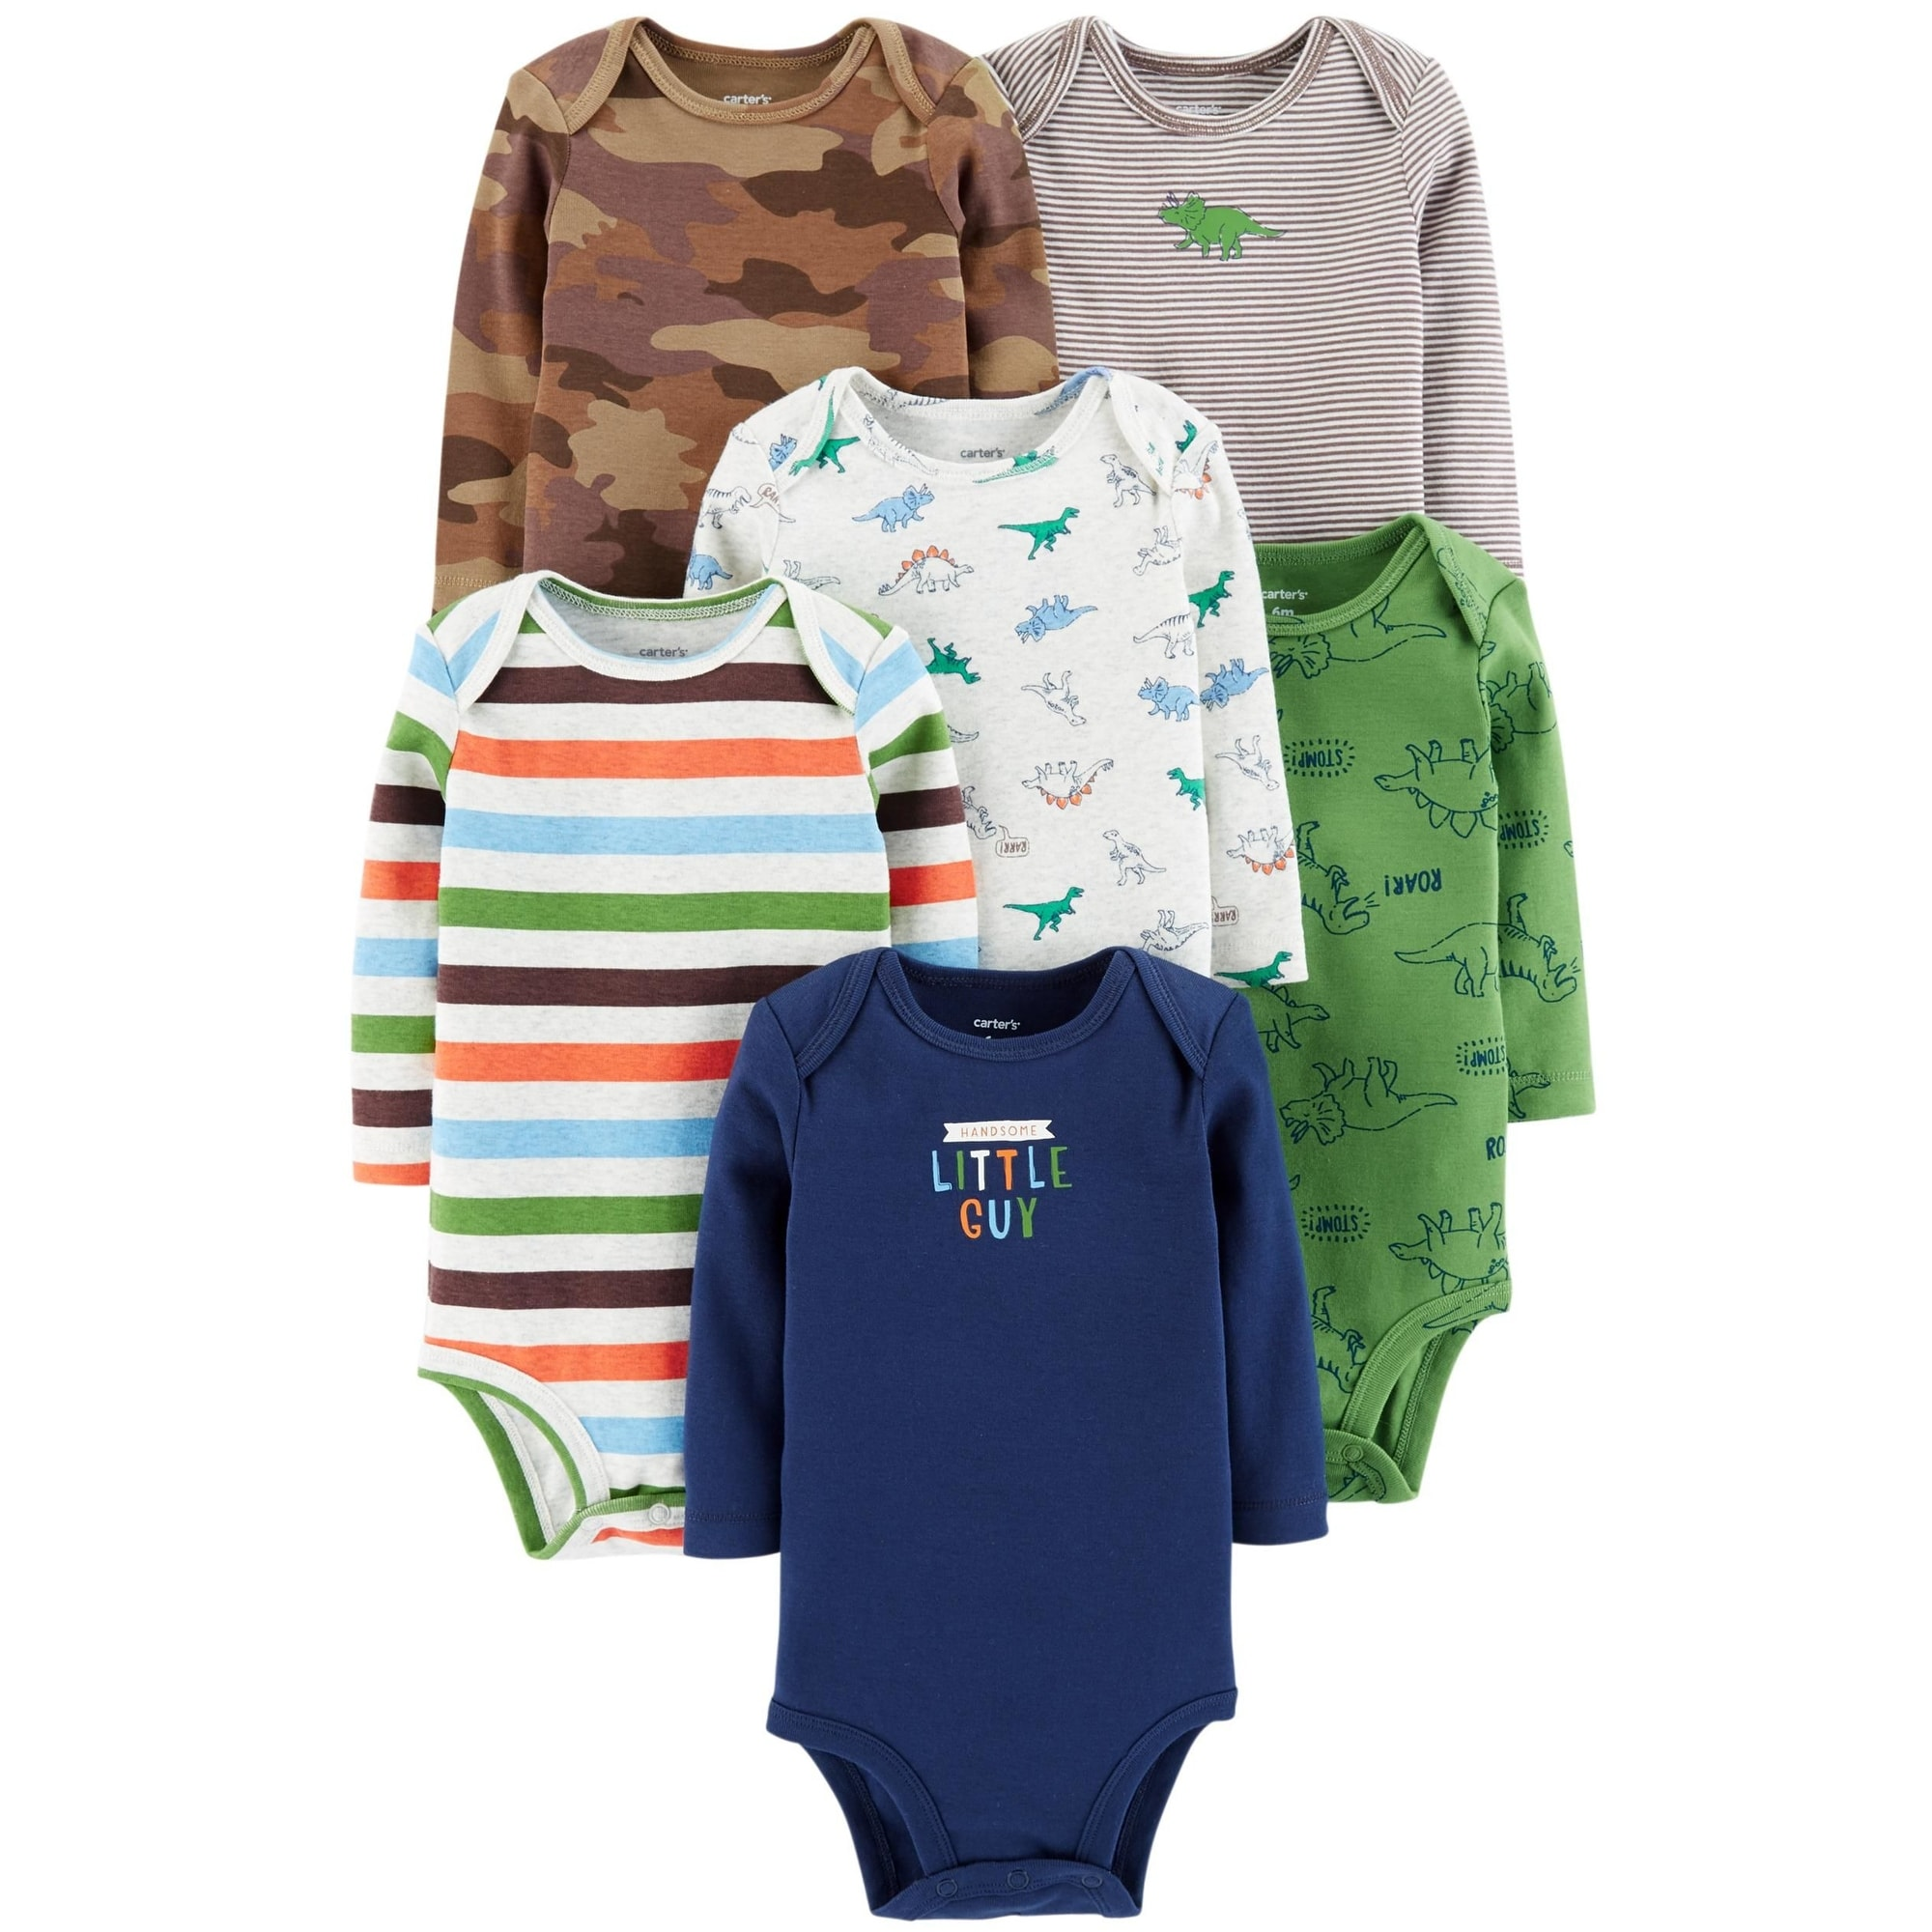 746eeafd8 Size 12 - 18 Months Boys' Clothing | Find Great Baby Clothing Deals  Shopping at Overstock